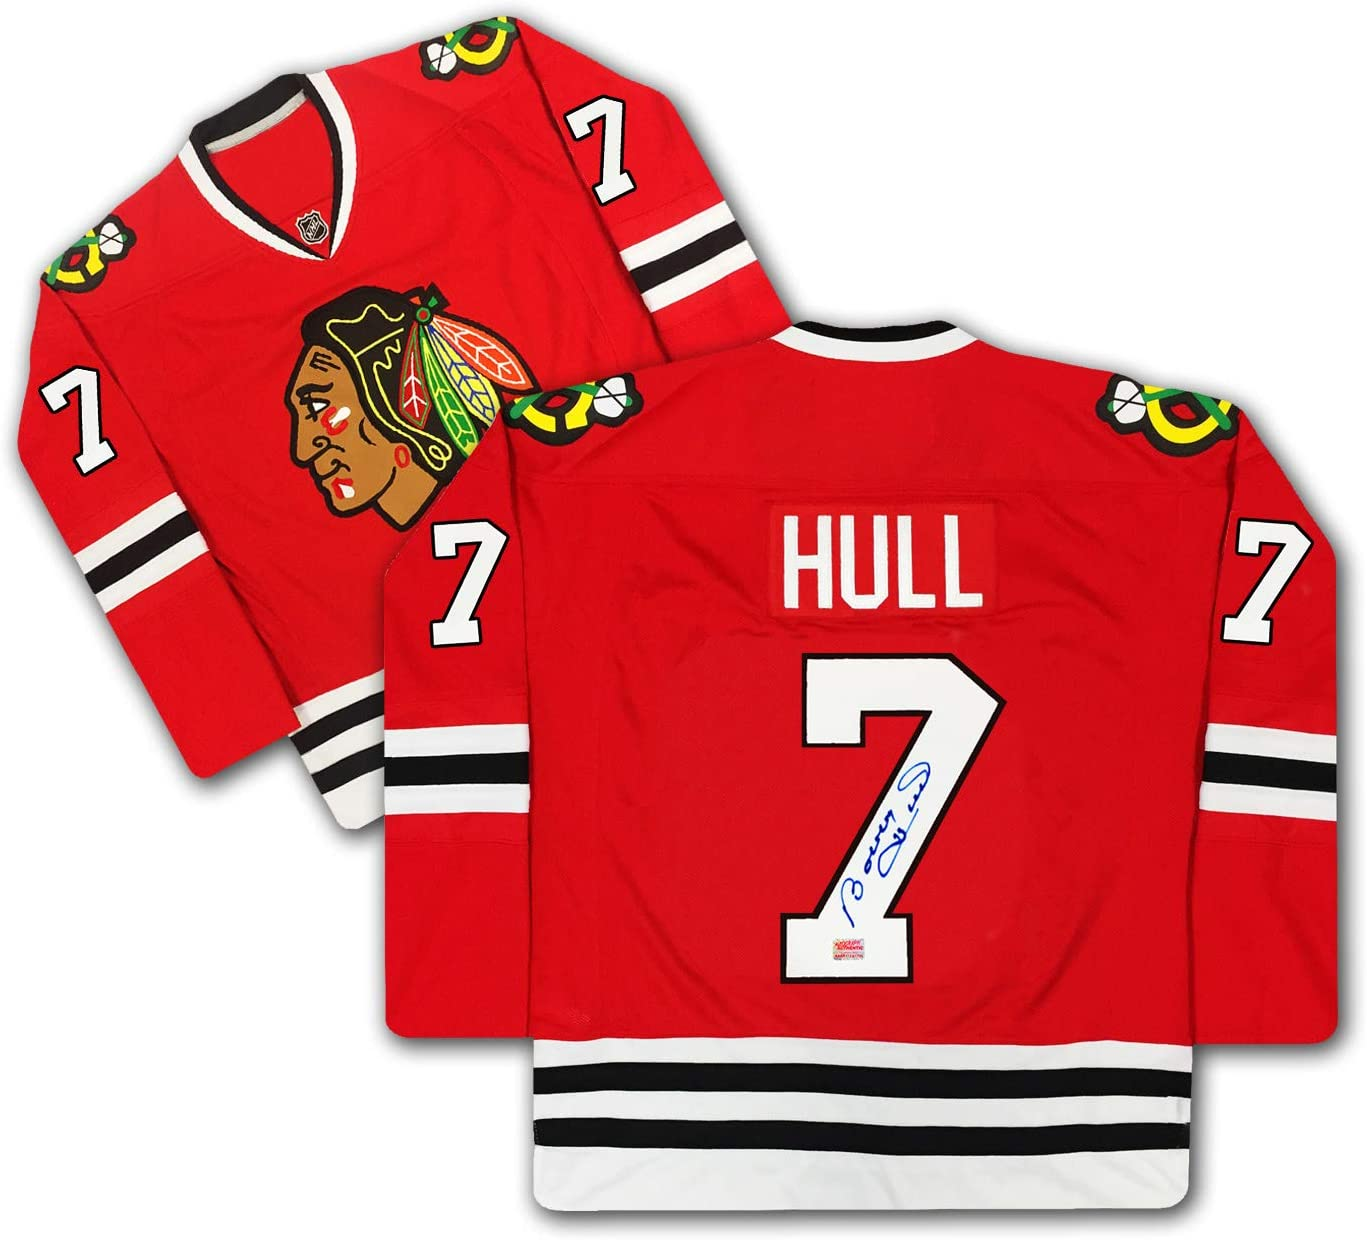 Bobby Hull Number 7 Signed Red Chicago Blackhawks Jersey at ...